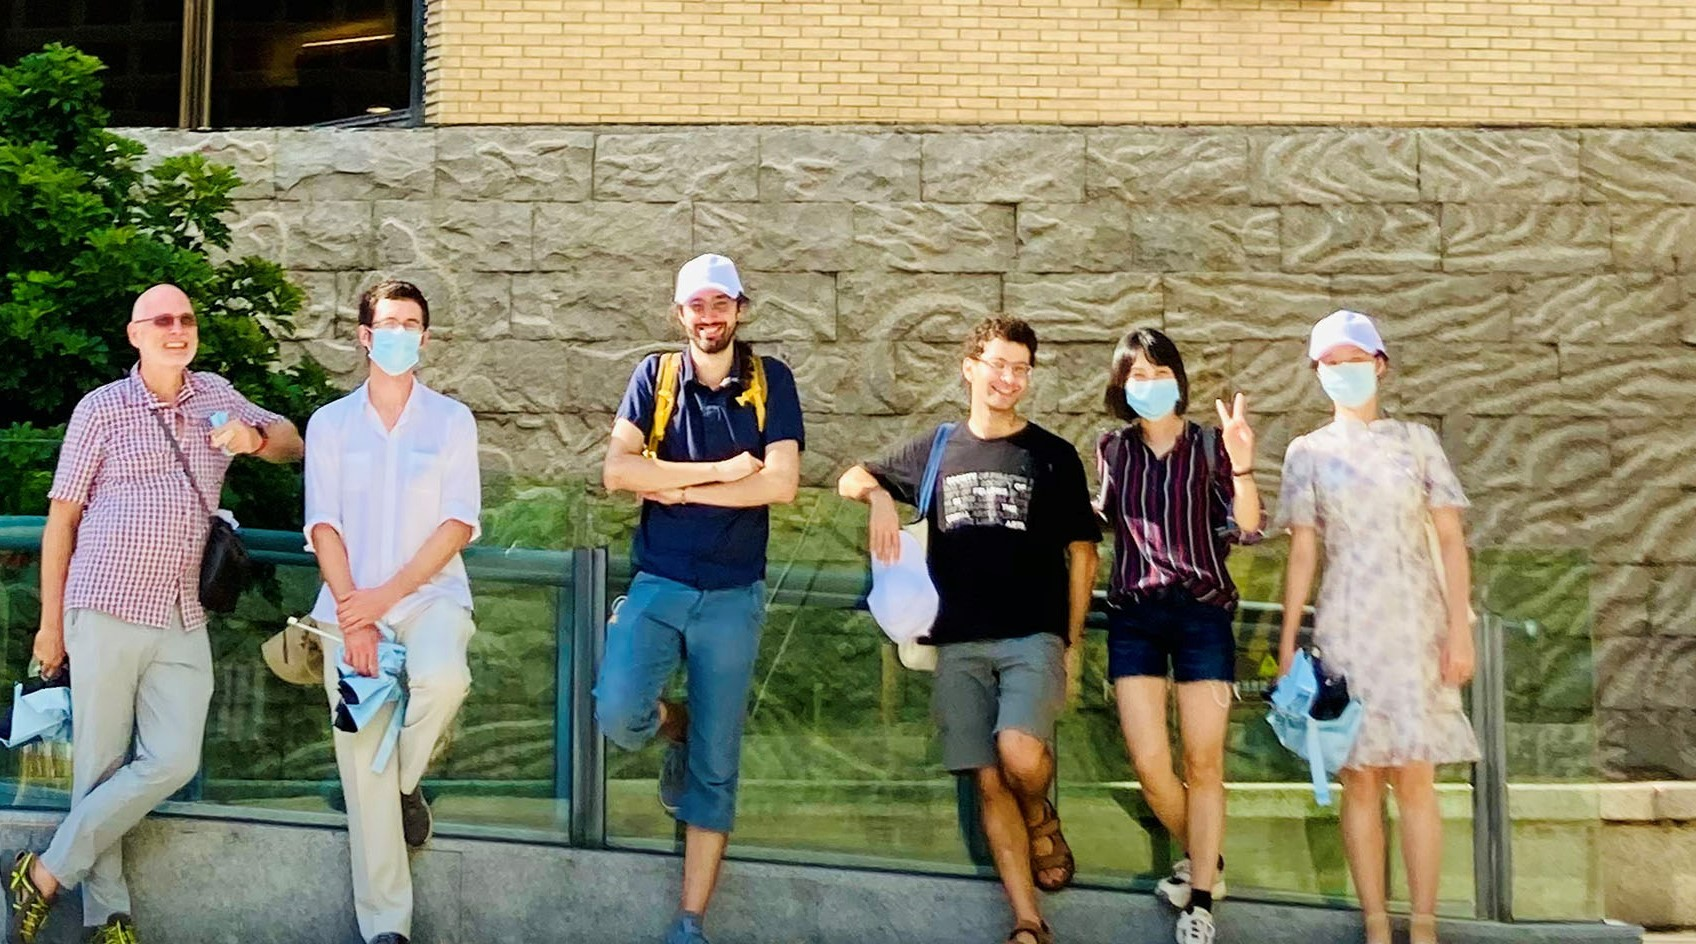 Situated Language Learning: 2021 Summer Staff Chinese Shenzhen Museum Trip